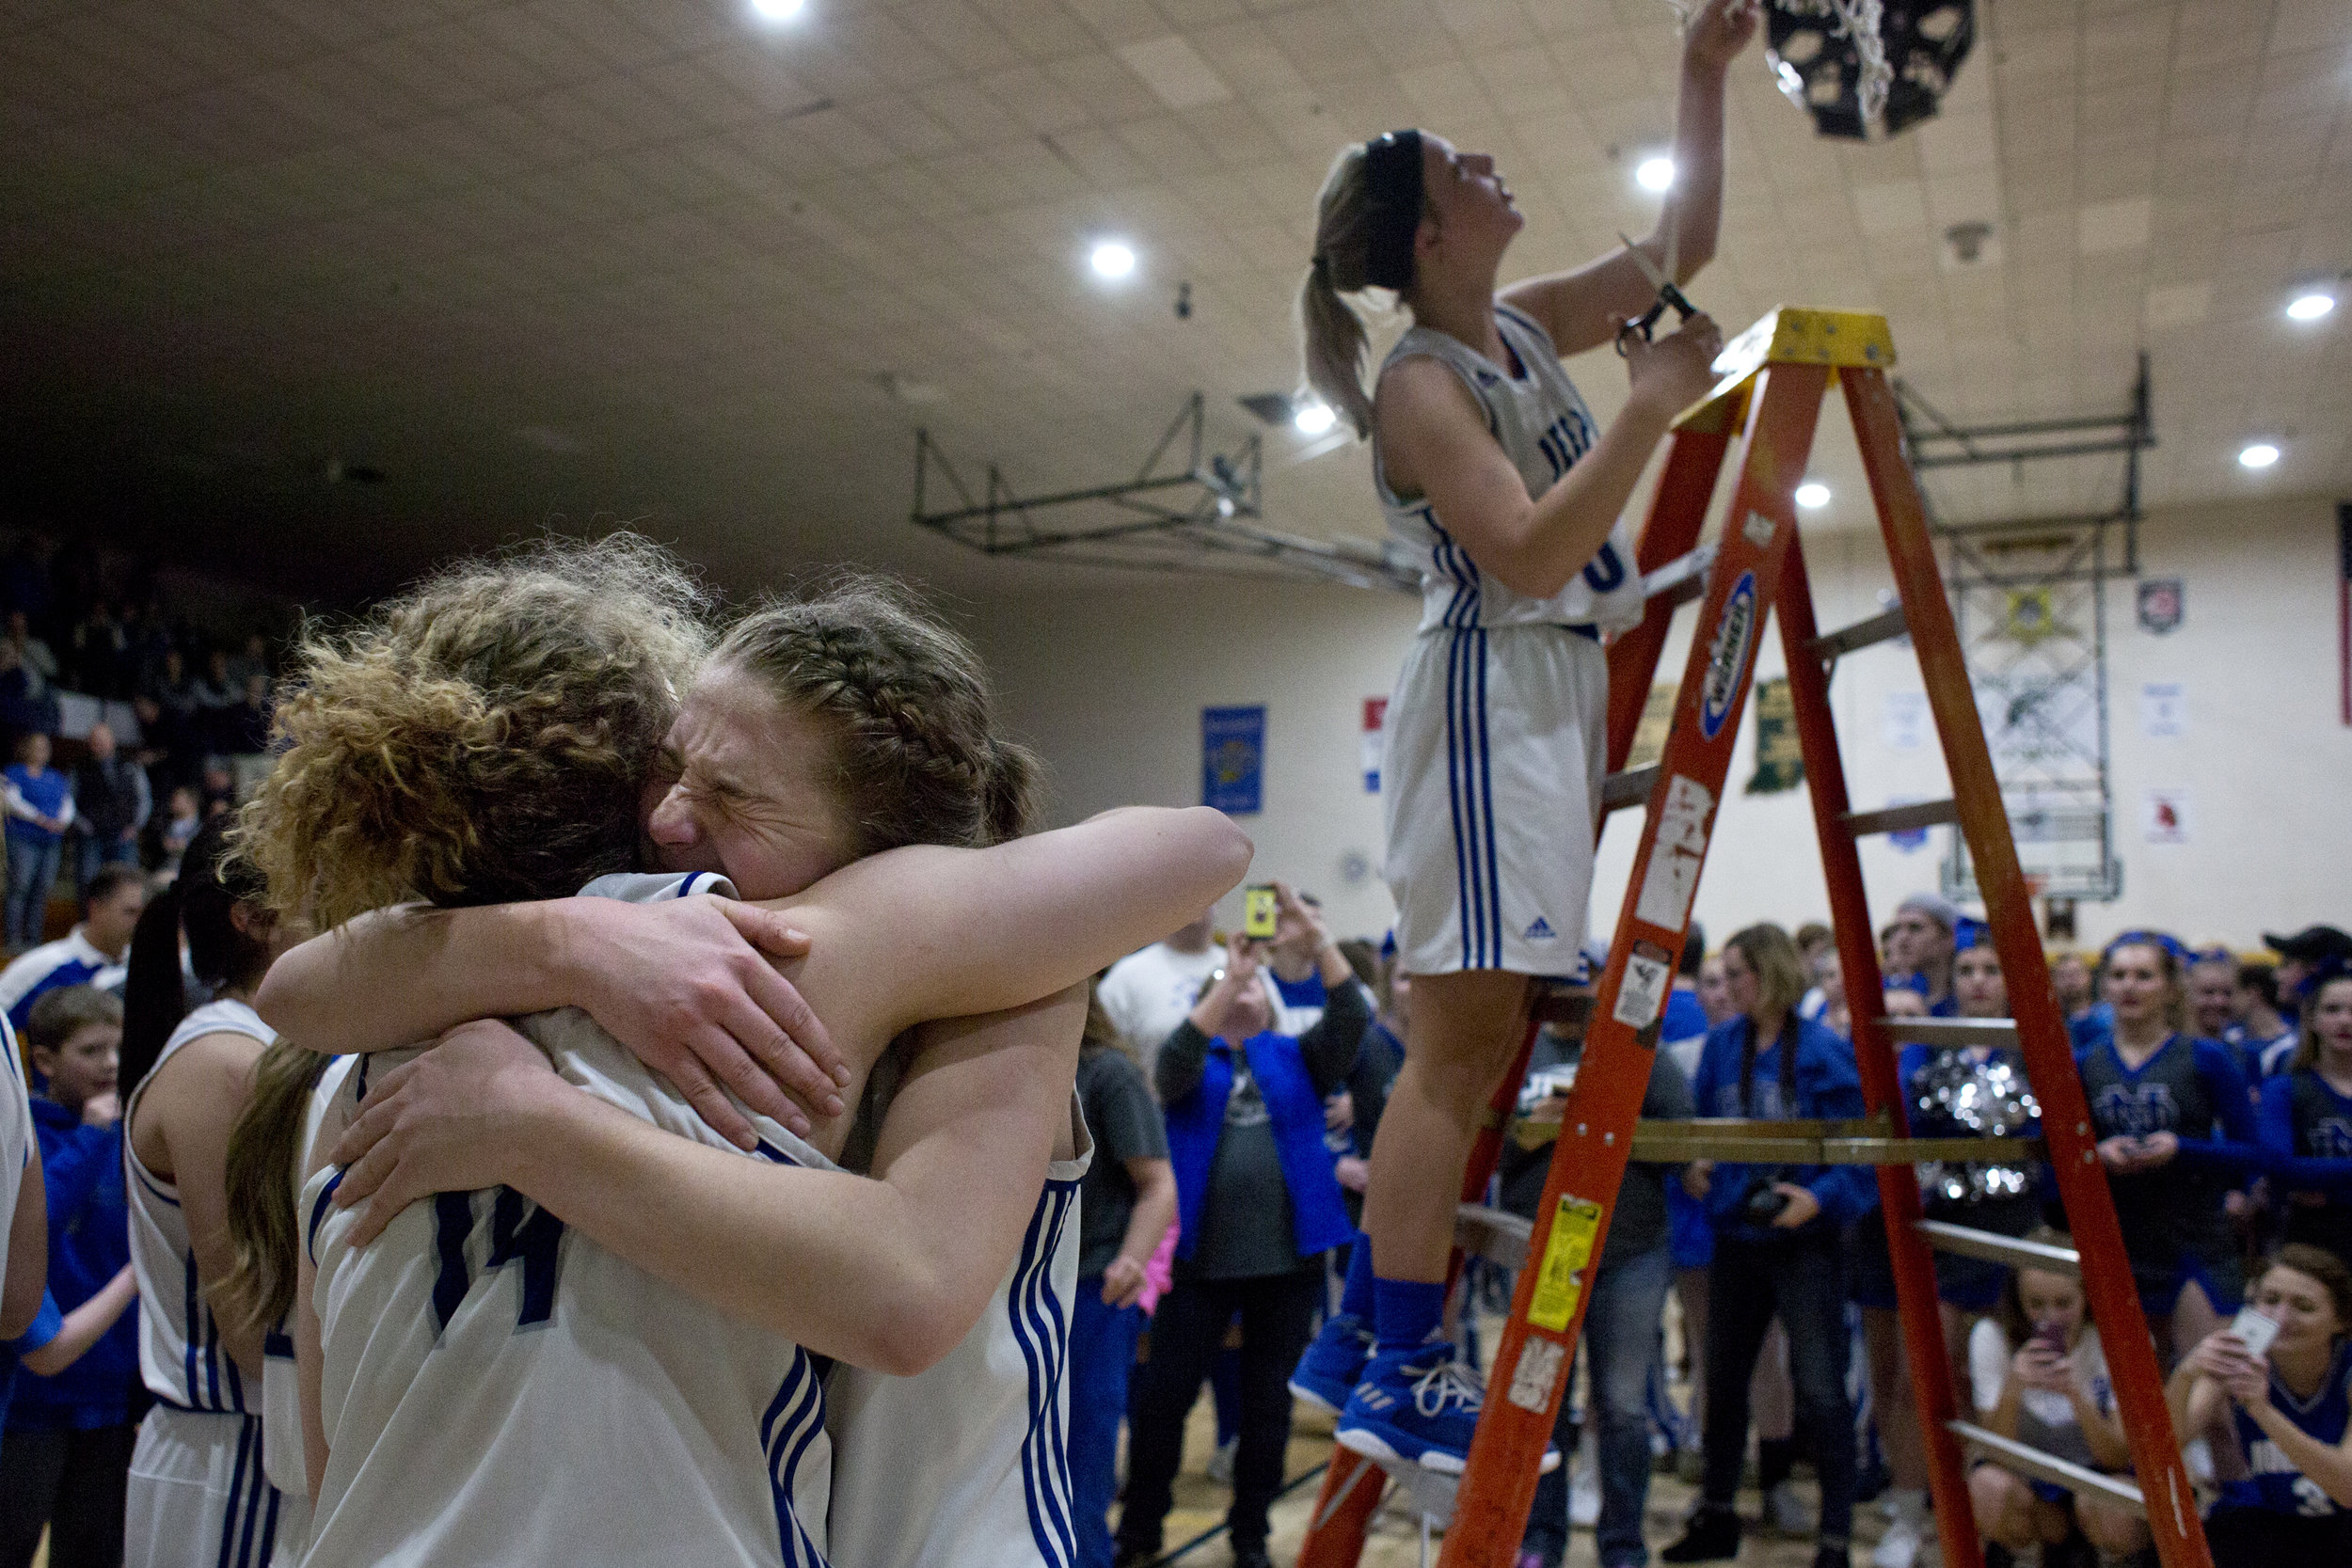 Northeast Dubois' Clare Mangin and Tyla Rasche embraced while Kortney Quinn cut the hoop down after defeating Wood Memorial at Wood Memorial High School in Oakland City on February 3, 2018. The Jeeps won 35-30 to claim the Class 1A Sectional title.